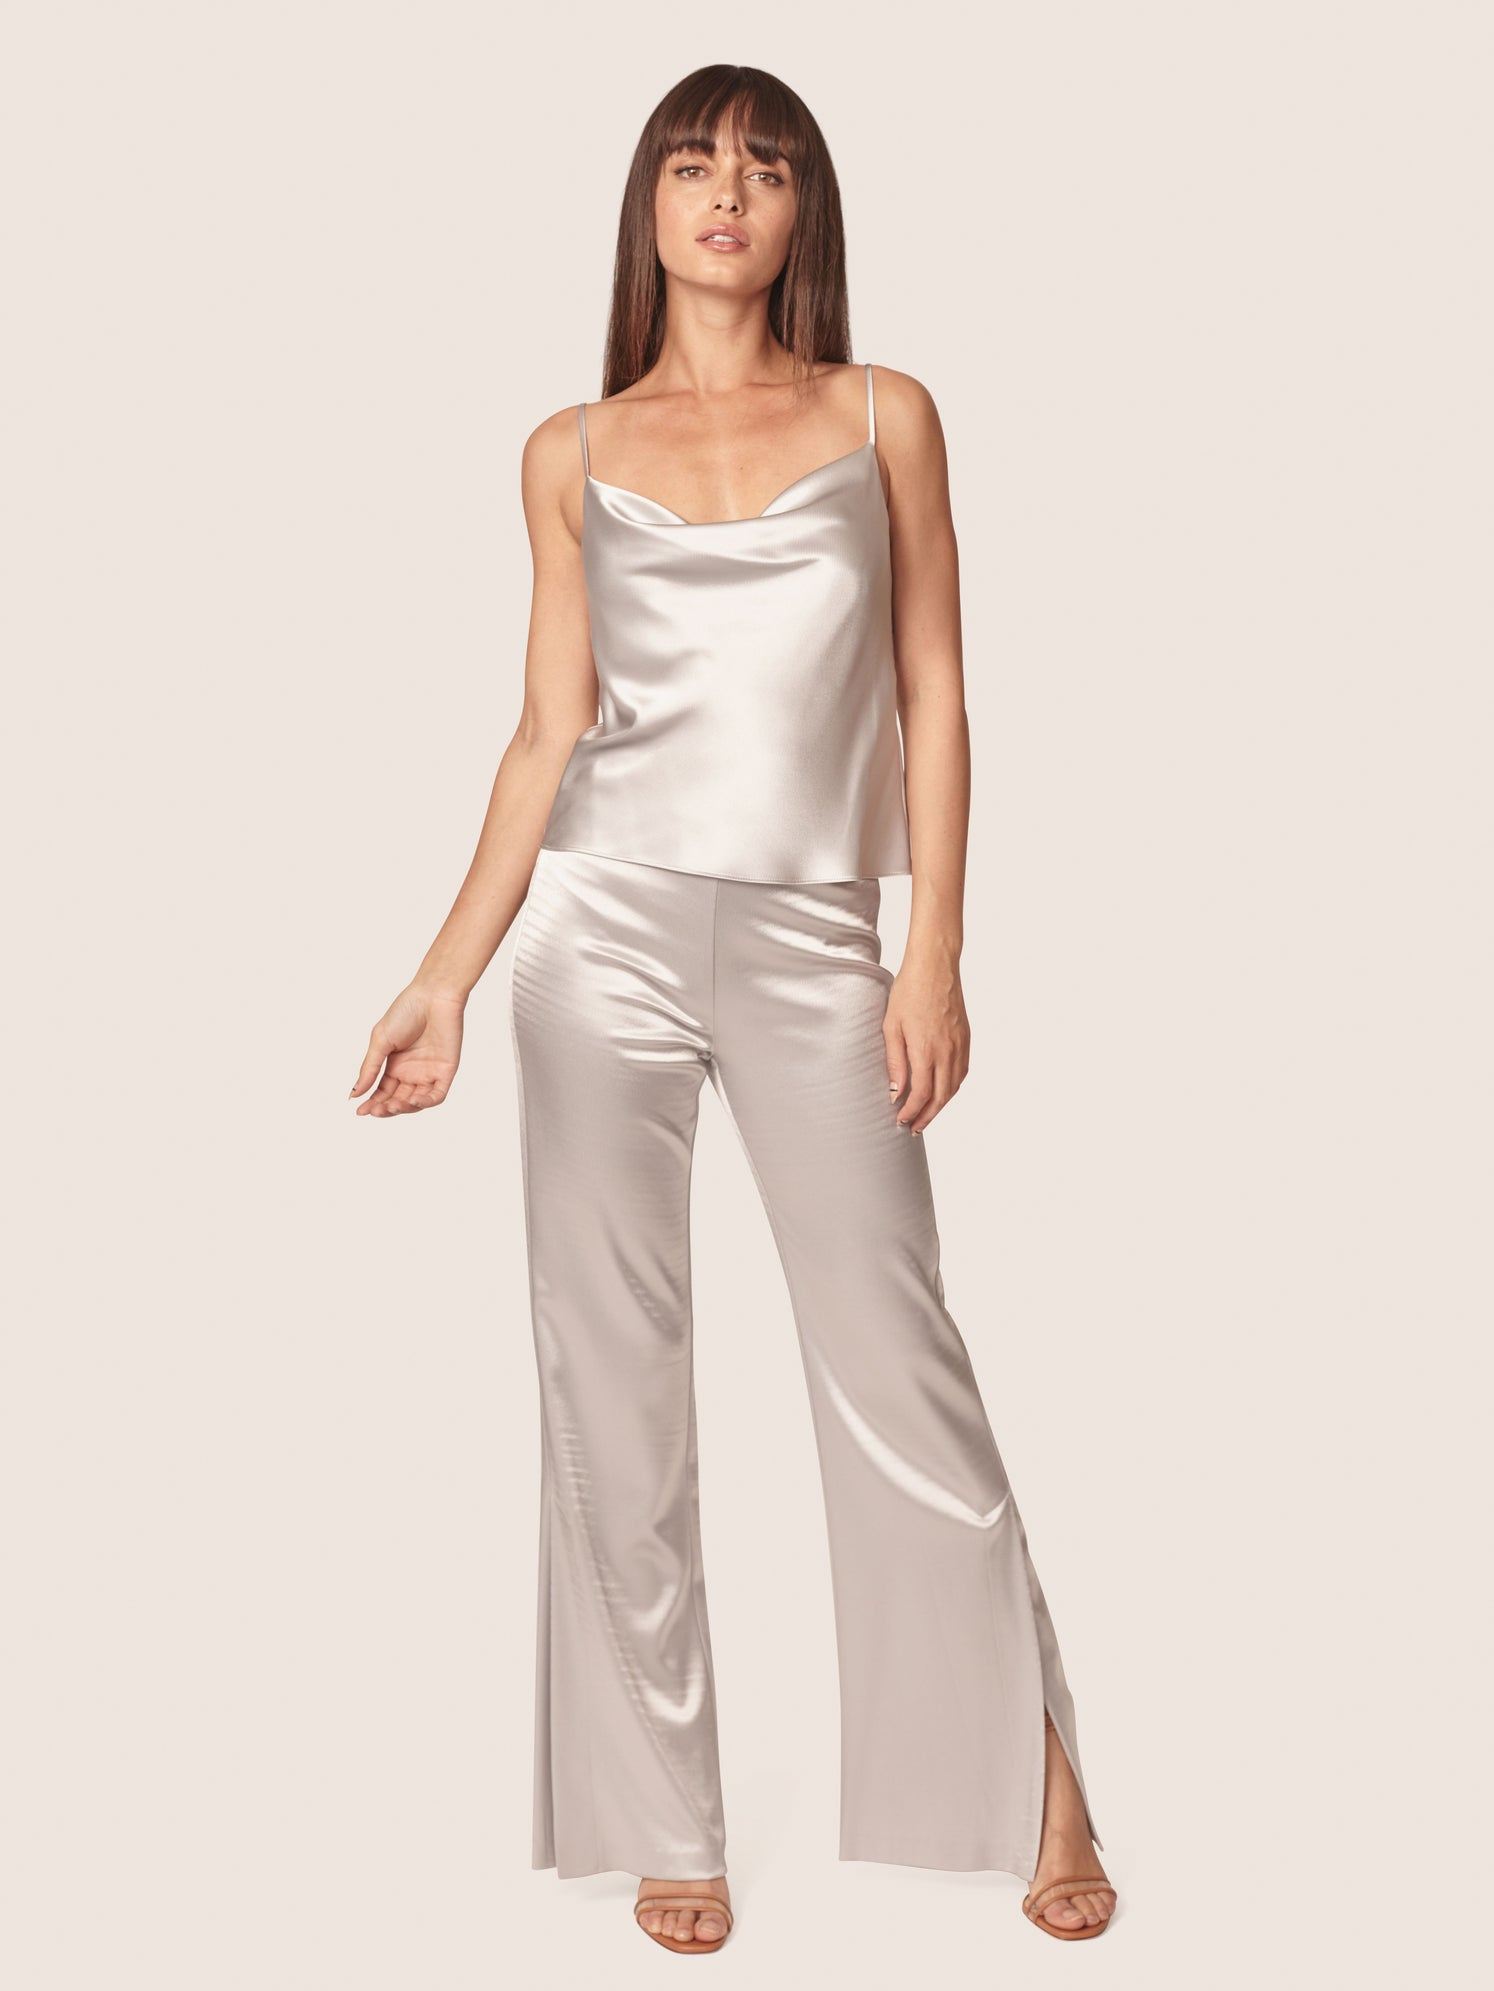 Silver satin cowl neck cami with matching satin pants